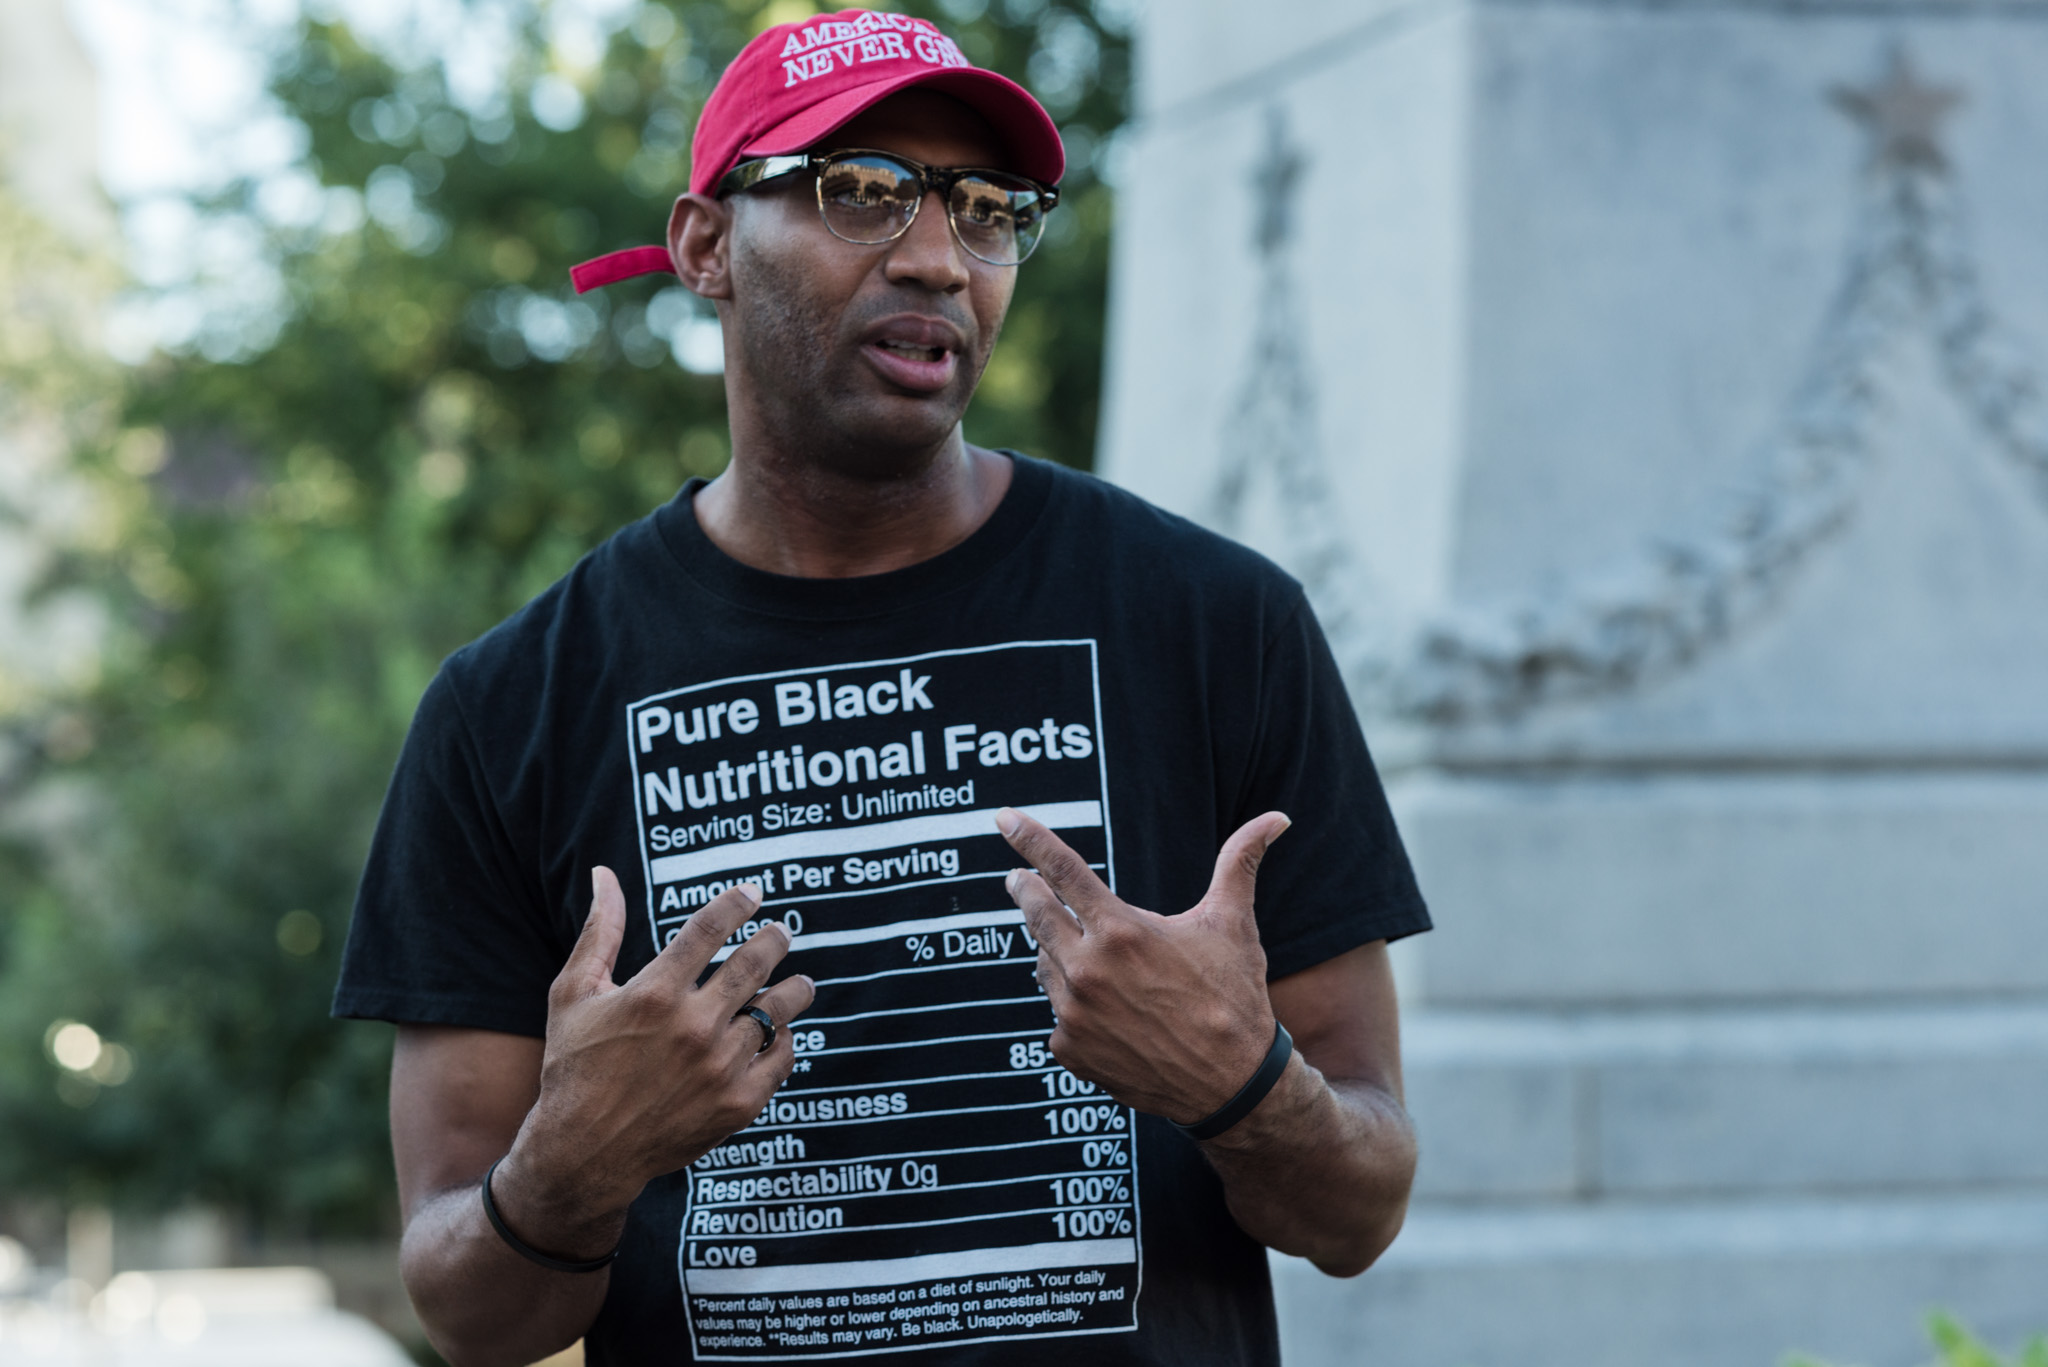 Mike Lowe, 36, takes his time to speak. Photo by Anthony Francis.